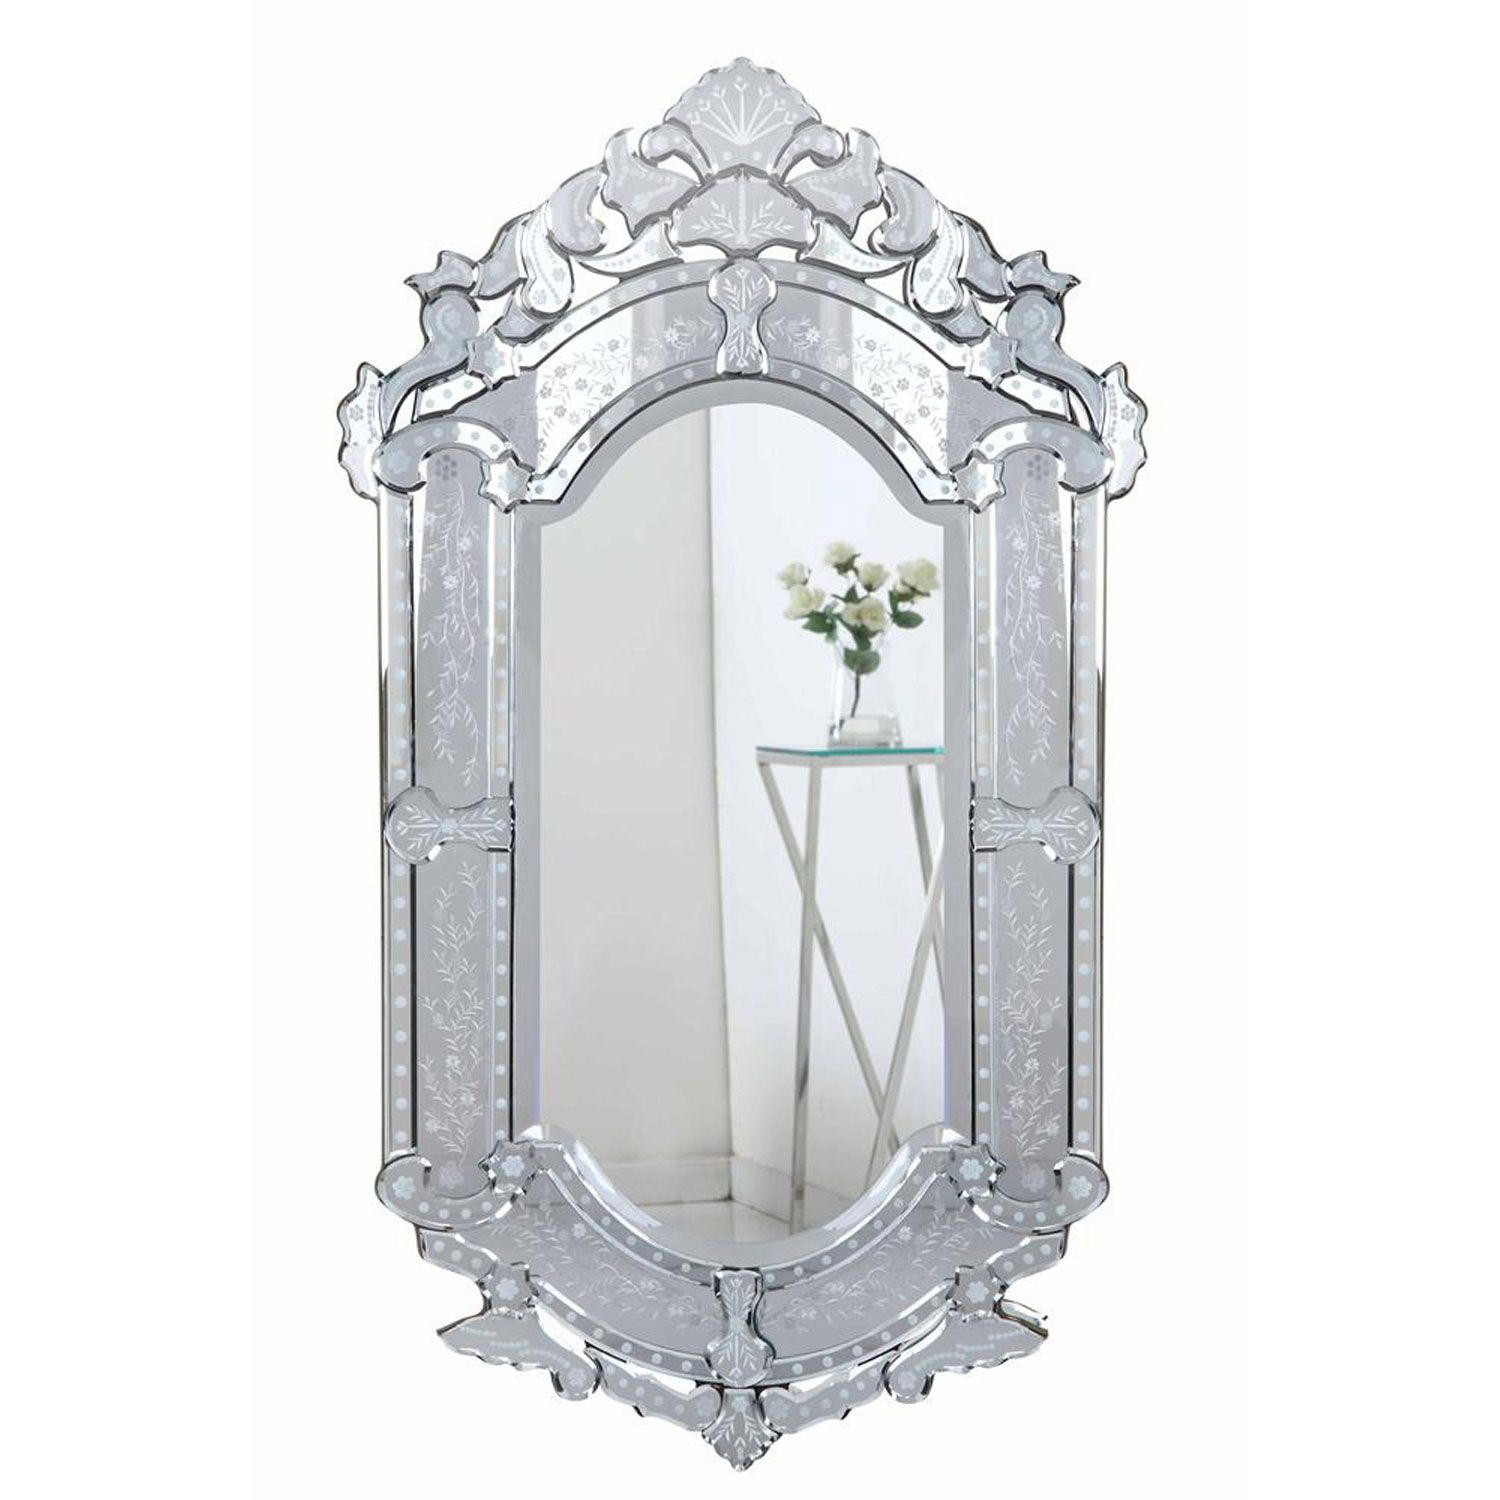 Venetian Clear 28 Inch Mirror Elegant Lighting Arched ...